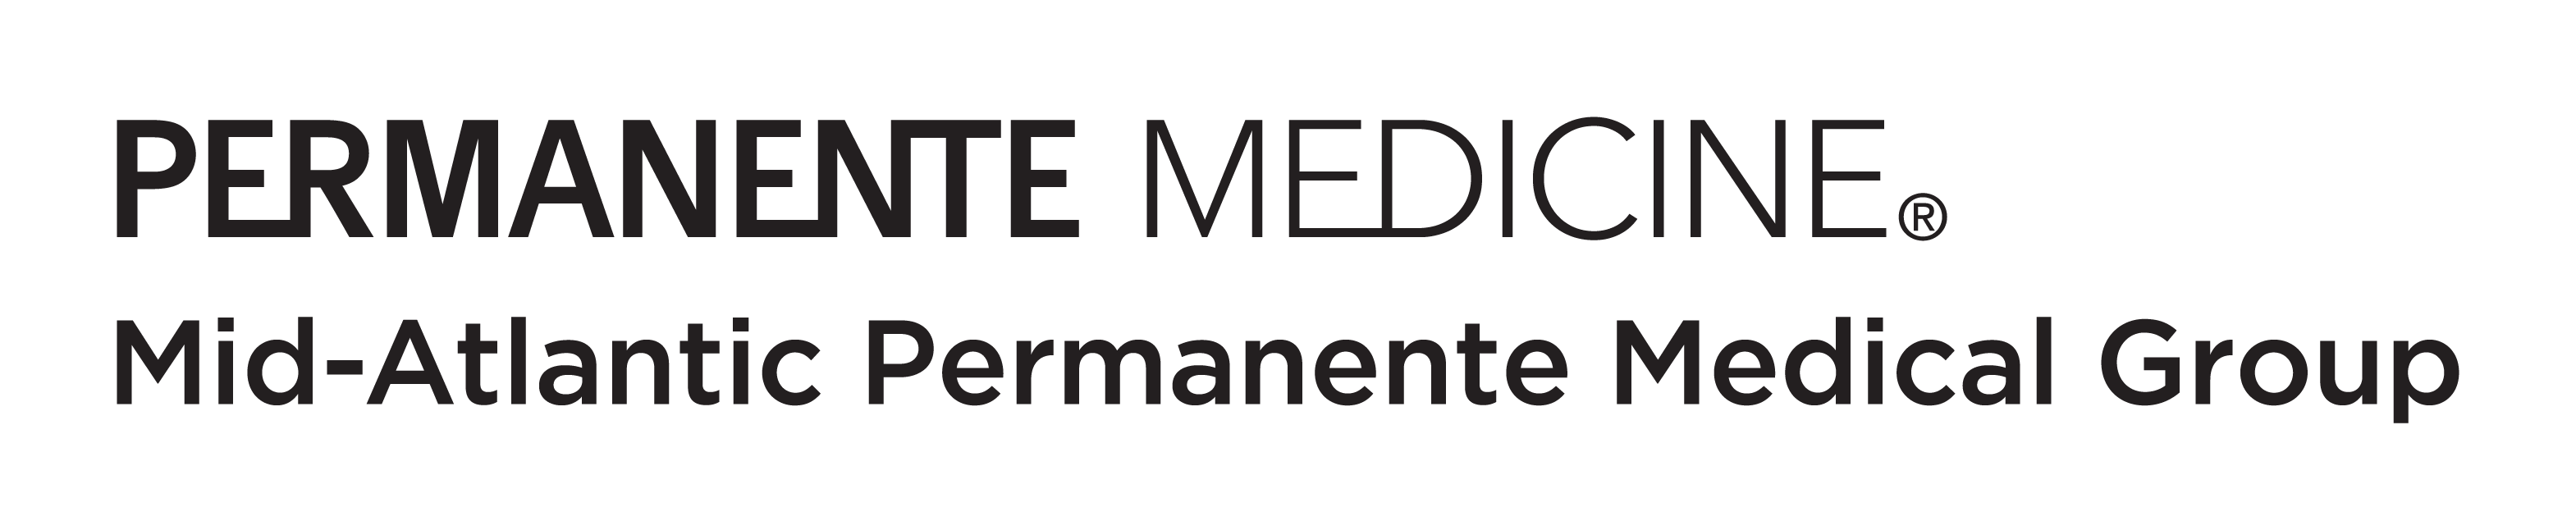 Permanente Medical Group 2019 Logo